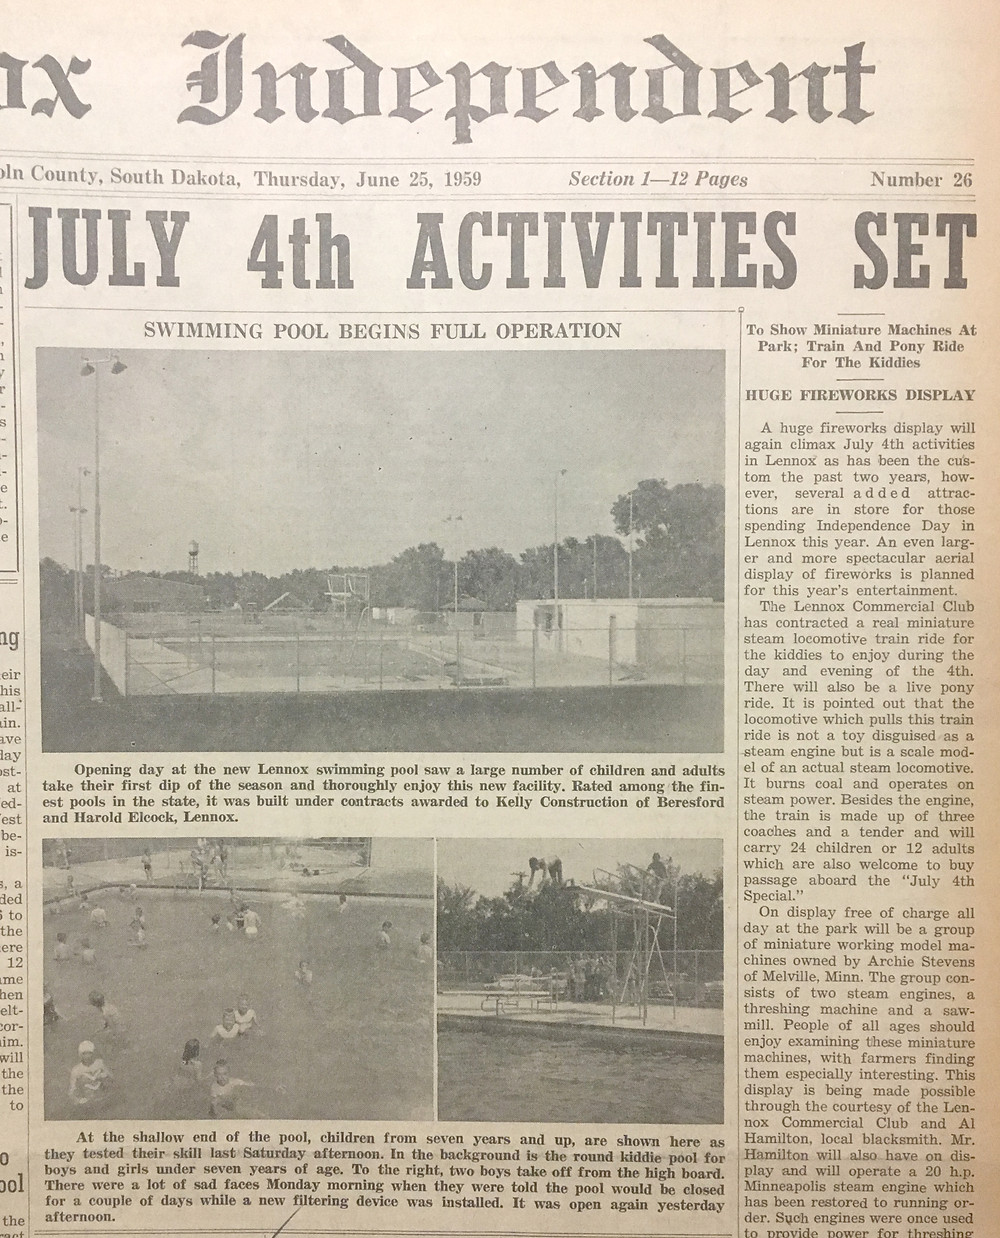 The Lennox Independent June 1959 reported the Lennox pool opened for the first time that month.